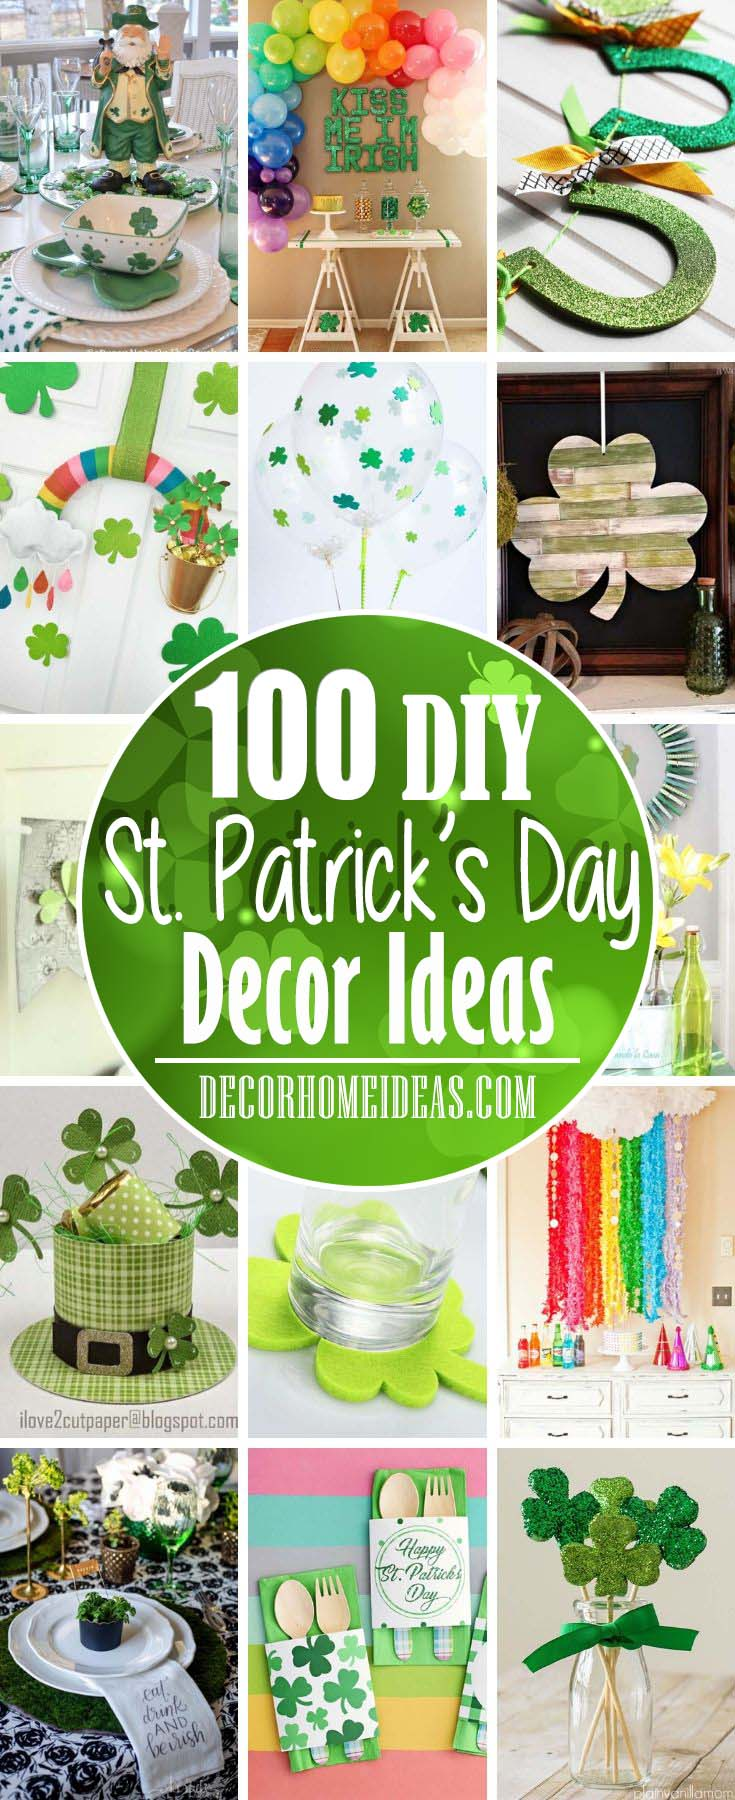 Best DIY St. Patrick's Day Decor Ideas. DIY projects and tutorials on St. Patrick's Day decorations and crafts. #diy #decor #decorations #stpatrick #decorhomeideas